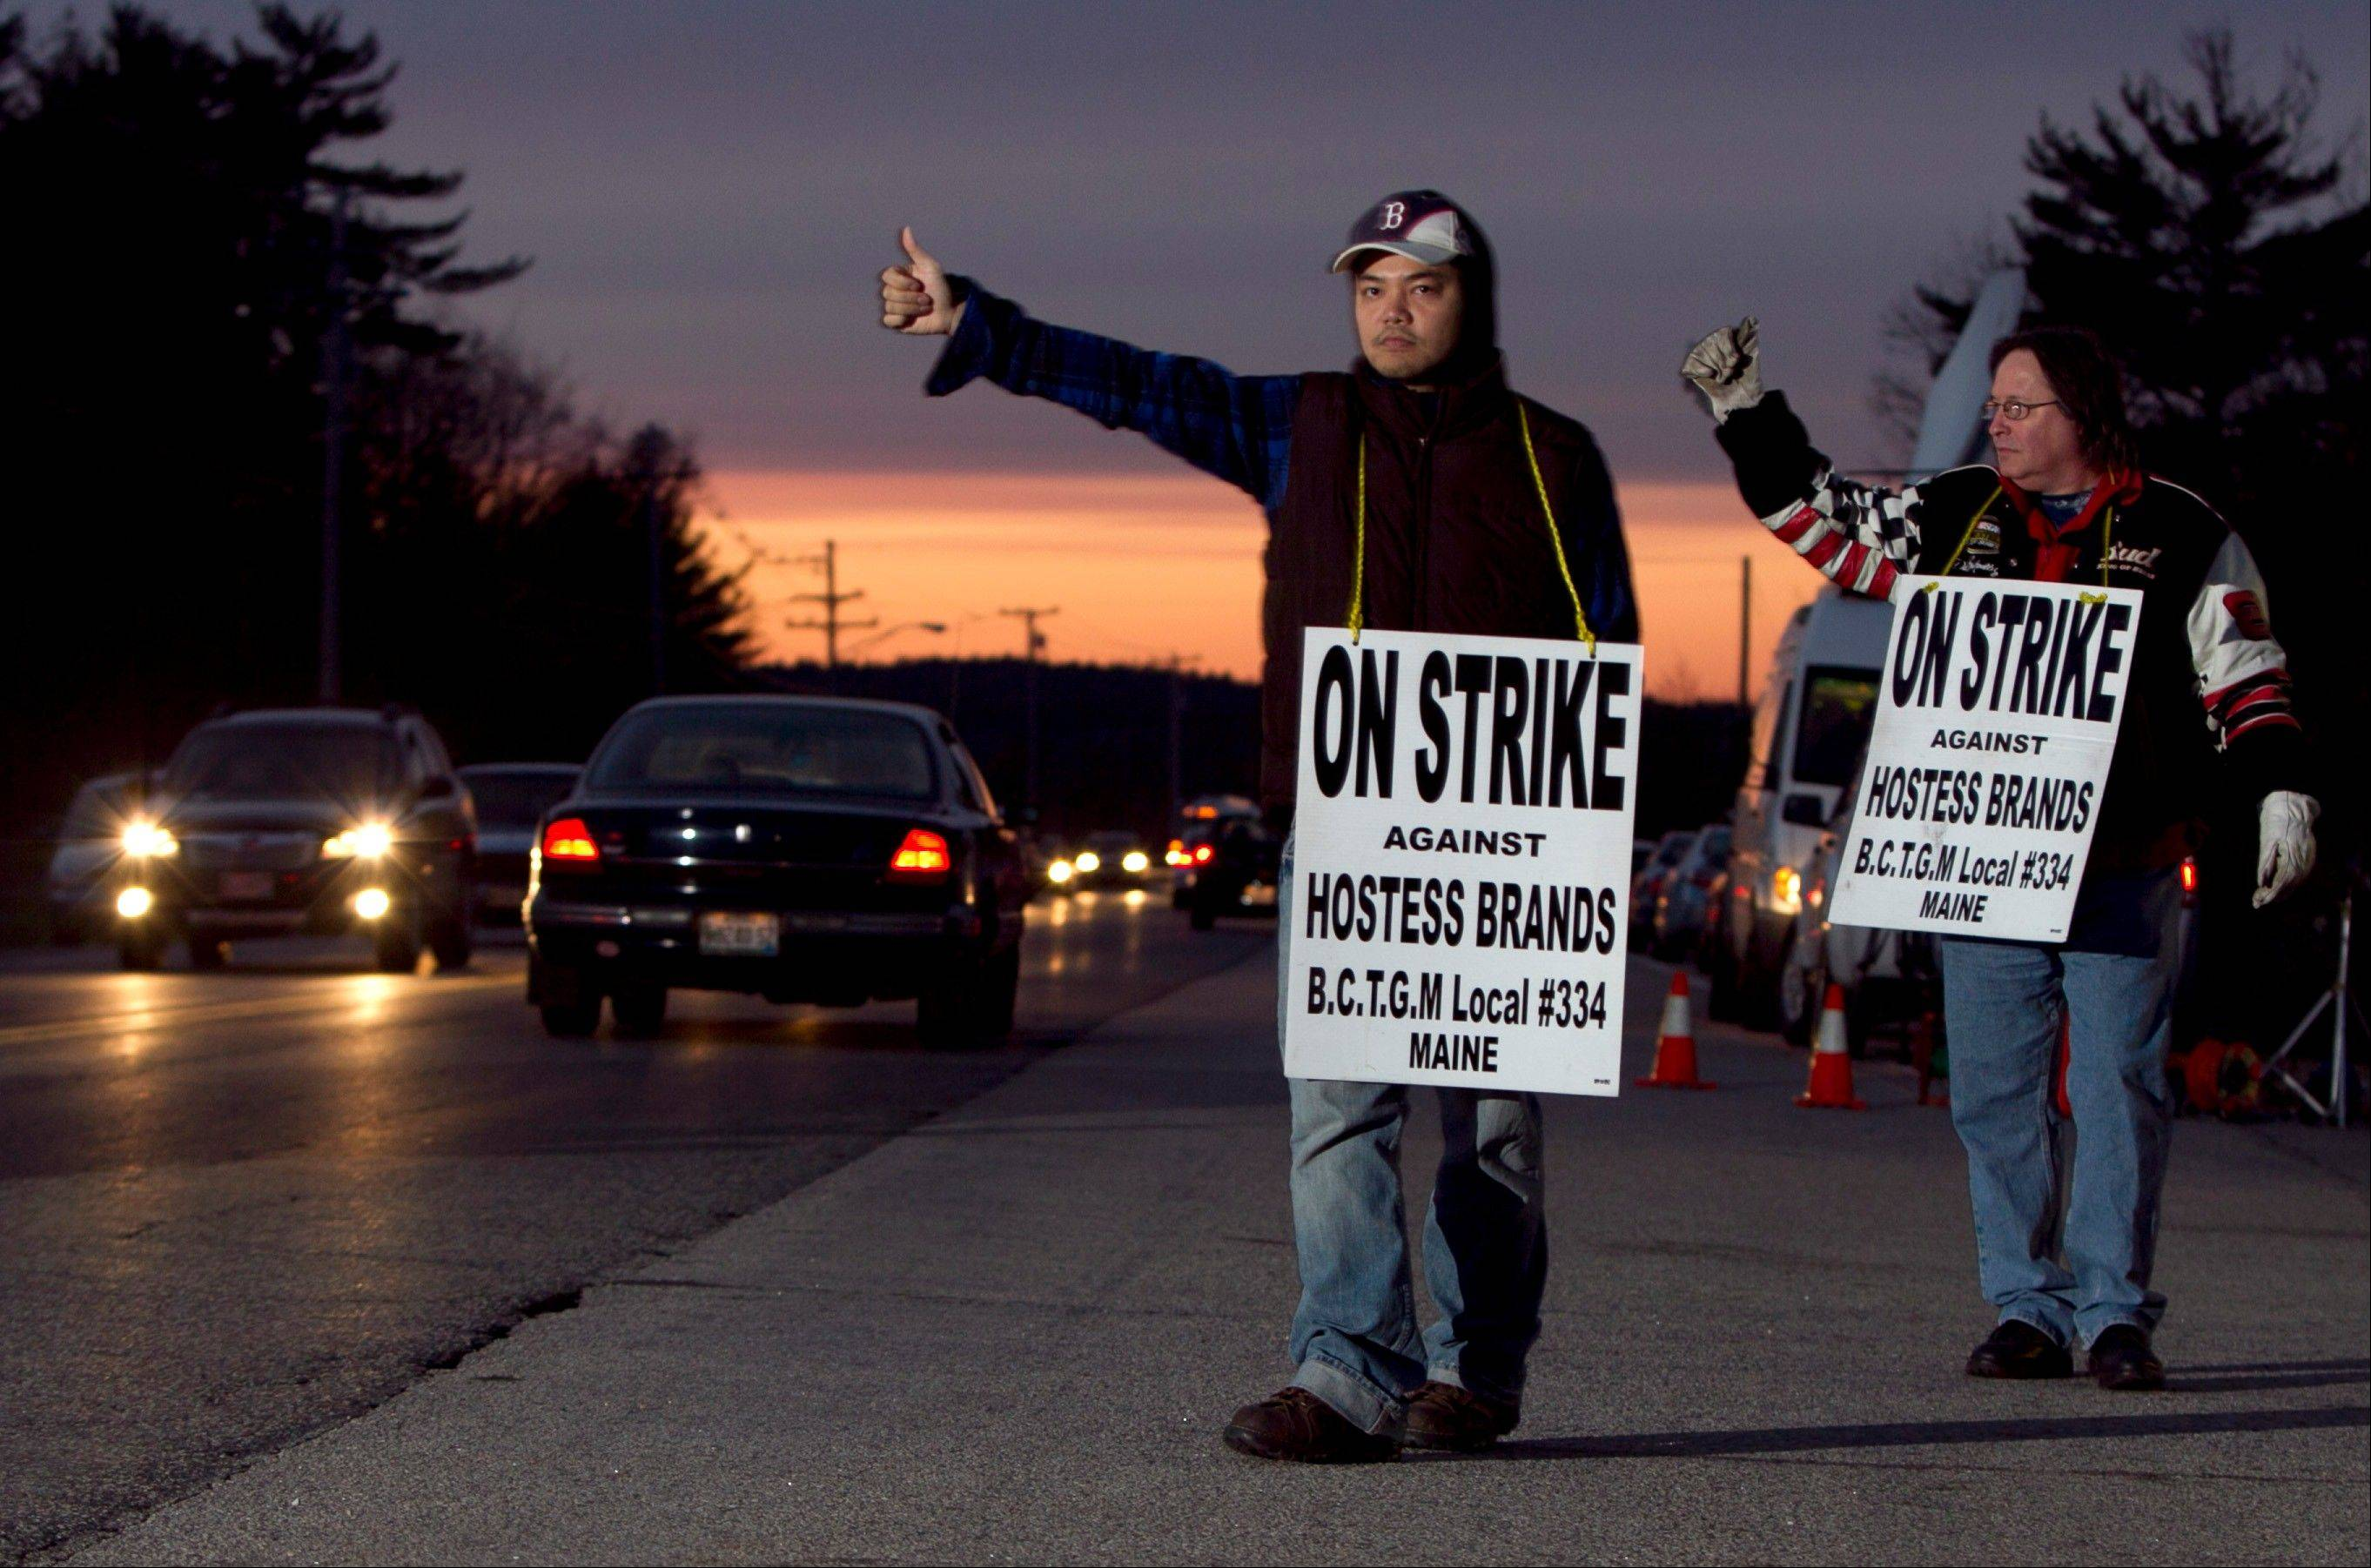 Striking workers Nam Phan, left, and Randy Goodwin picket outside a Hostess Brand plant, Friday in Biddeford, Maine.